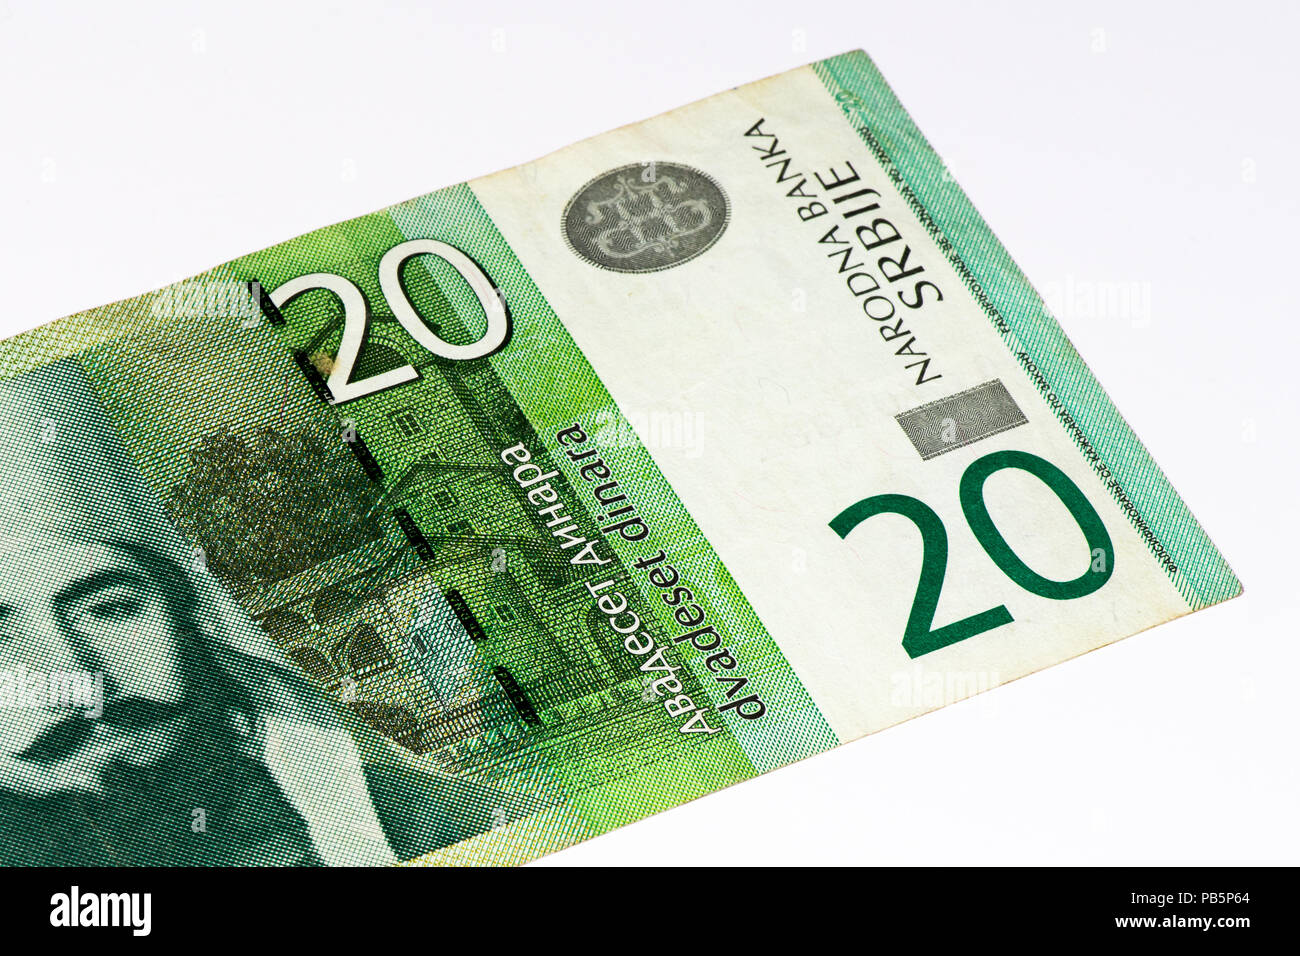 20 Serbian Dinars Bank Note Dinar Is The National Currency Of